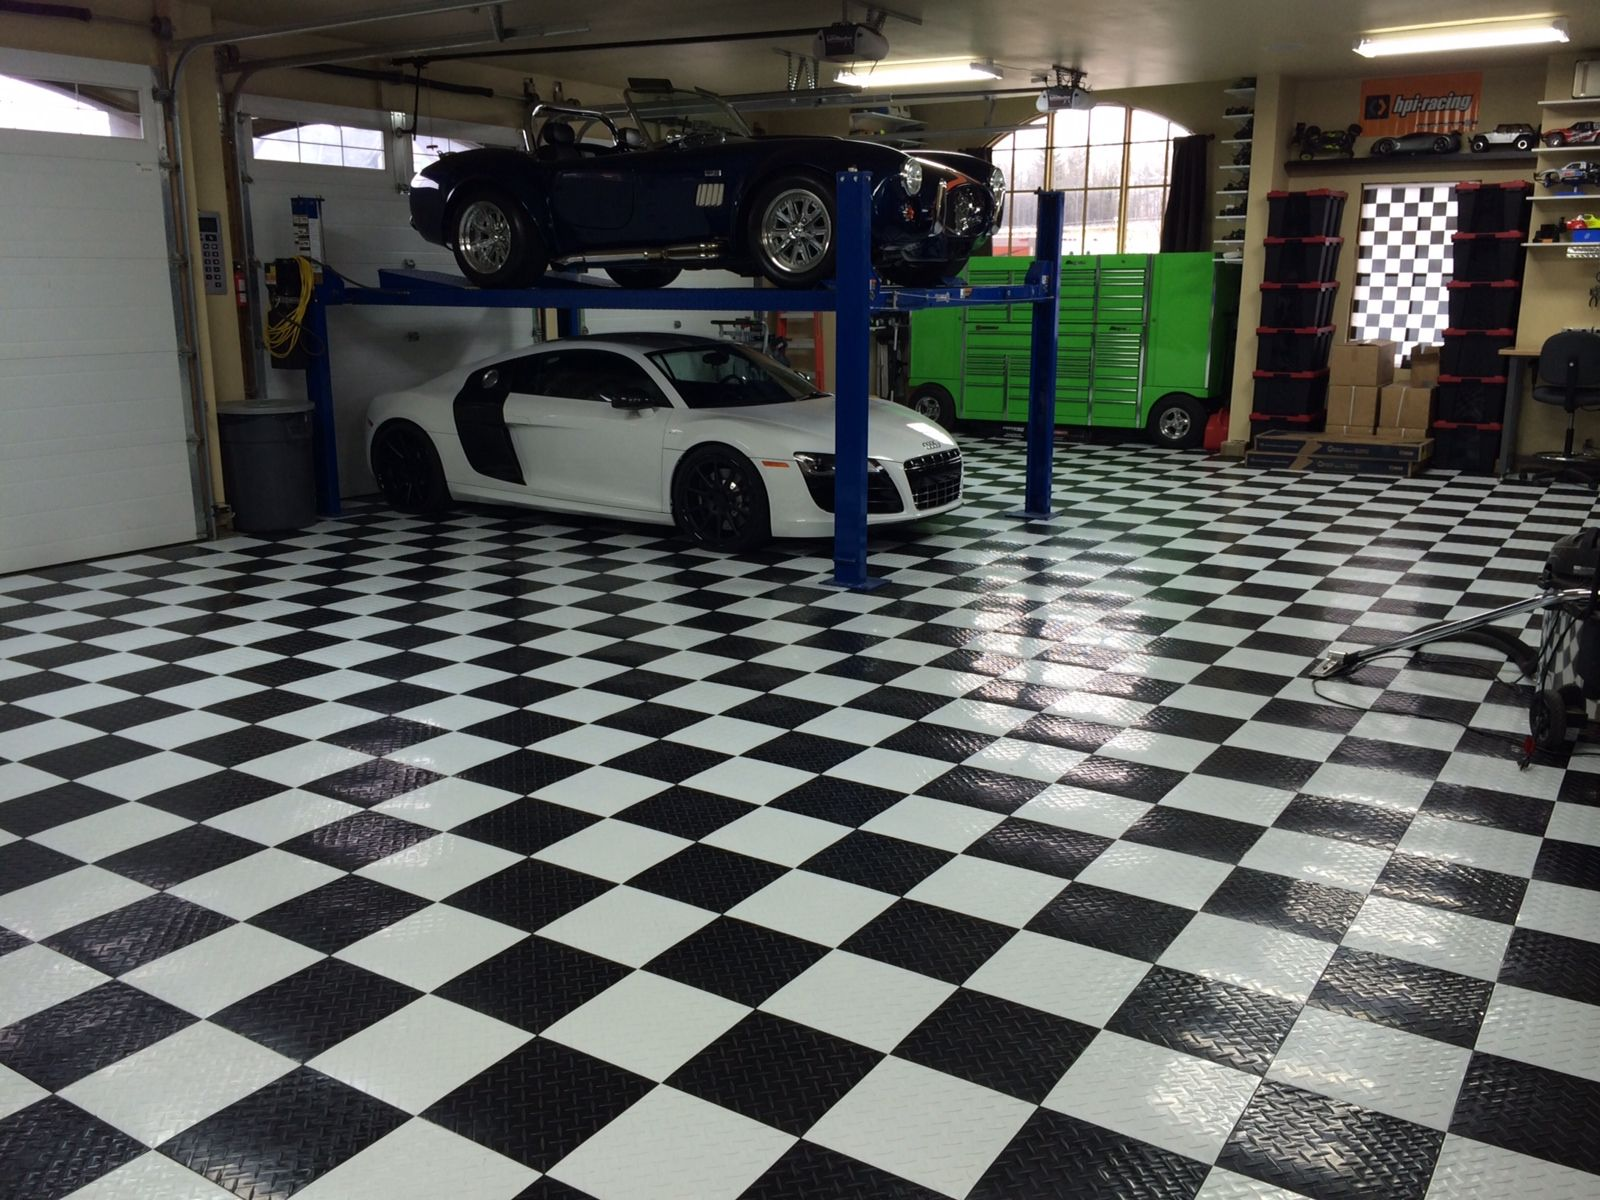 Wonderful 1 Inch Hexagon Floor Tiles Tiny 12 X 12 Ceramic Tile Rectangular 12 X 24 Floor Tile 12X12 Ceiling Tiles Young 12X12 Ceramic Floor Tile Red12X12 Ceramic Tile Home Depot Awesome Garages | ... Plus Fluorescent Light: Awesome Checkered ..